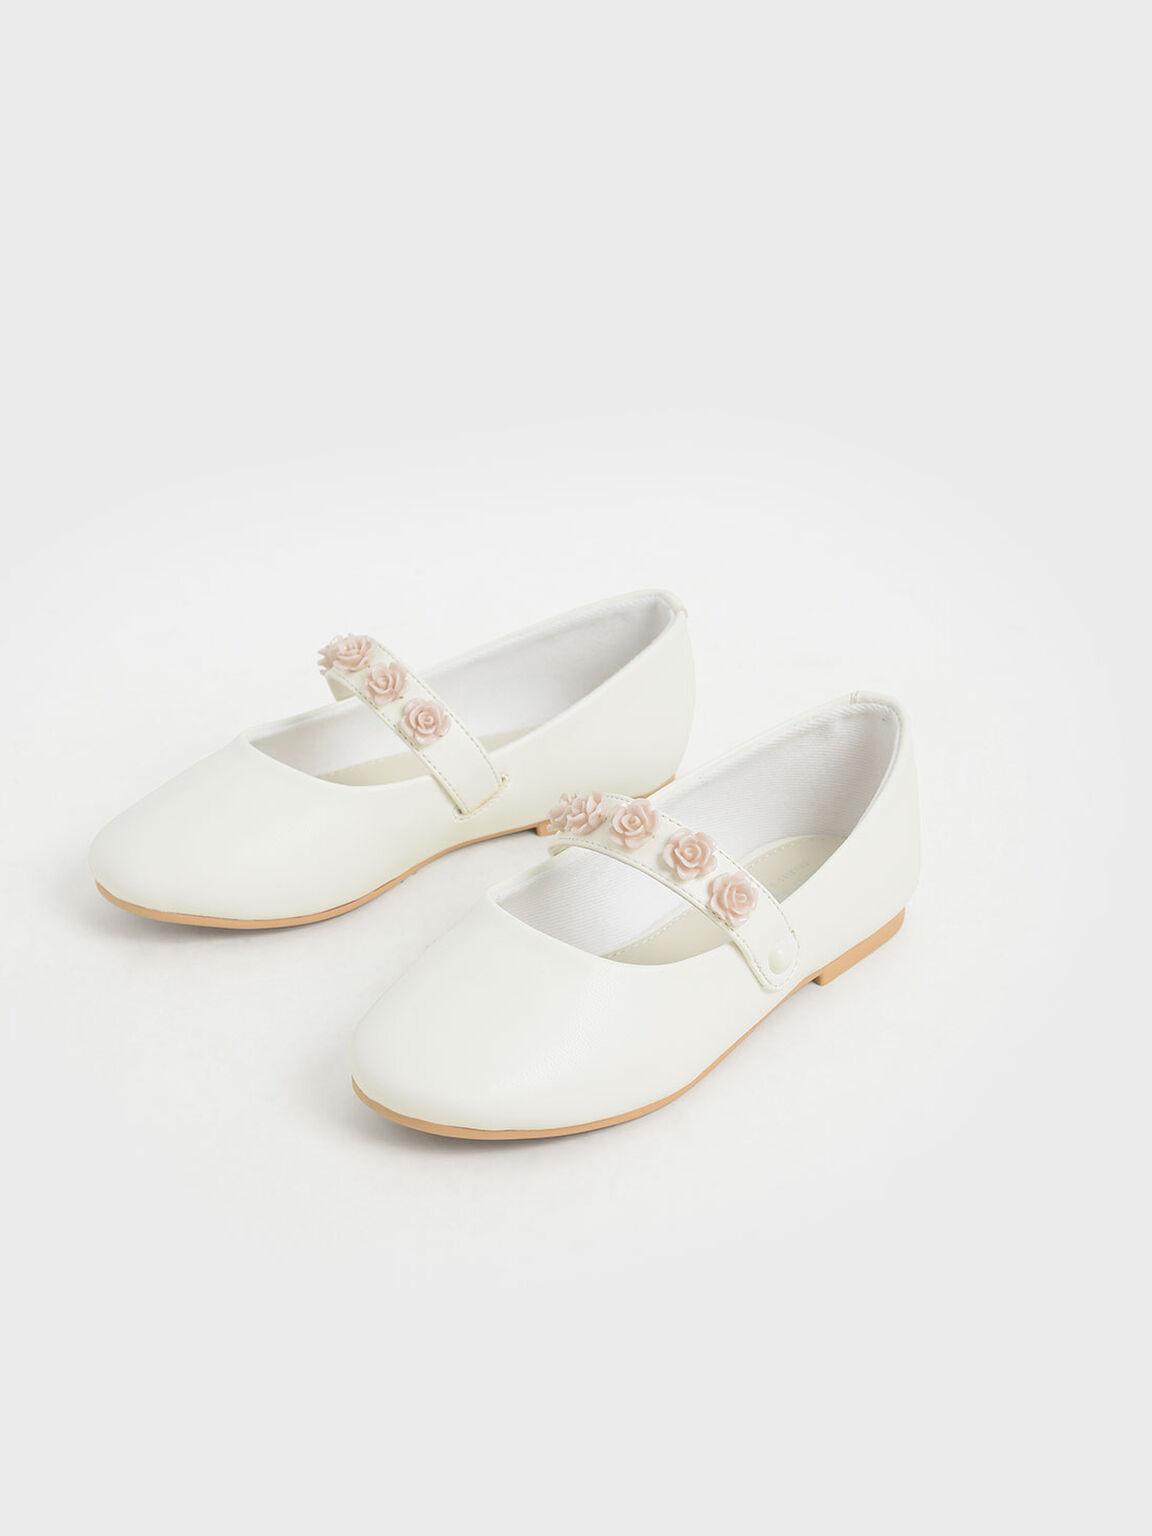 Girls' Flower-Embellished Mary Janes, White, hi-res